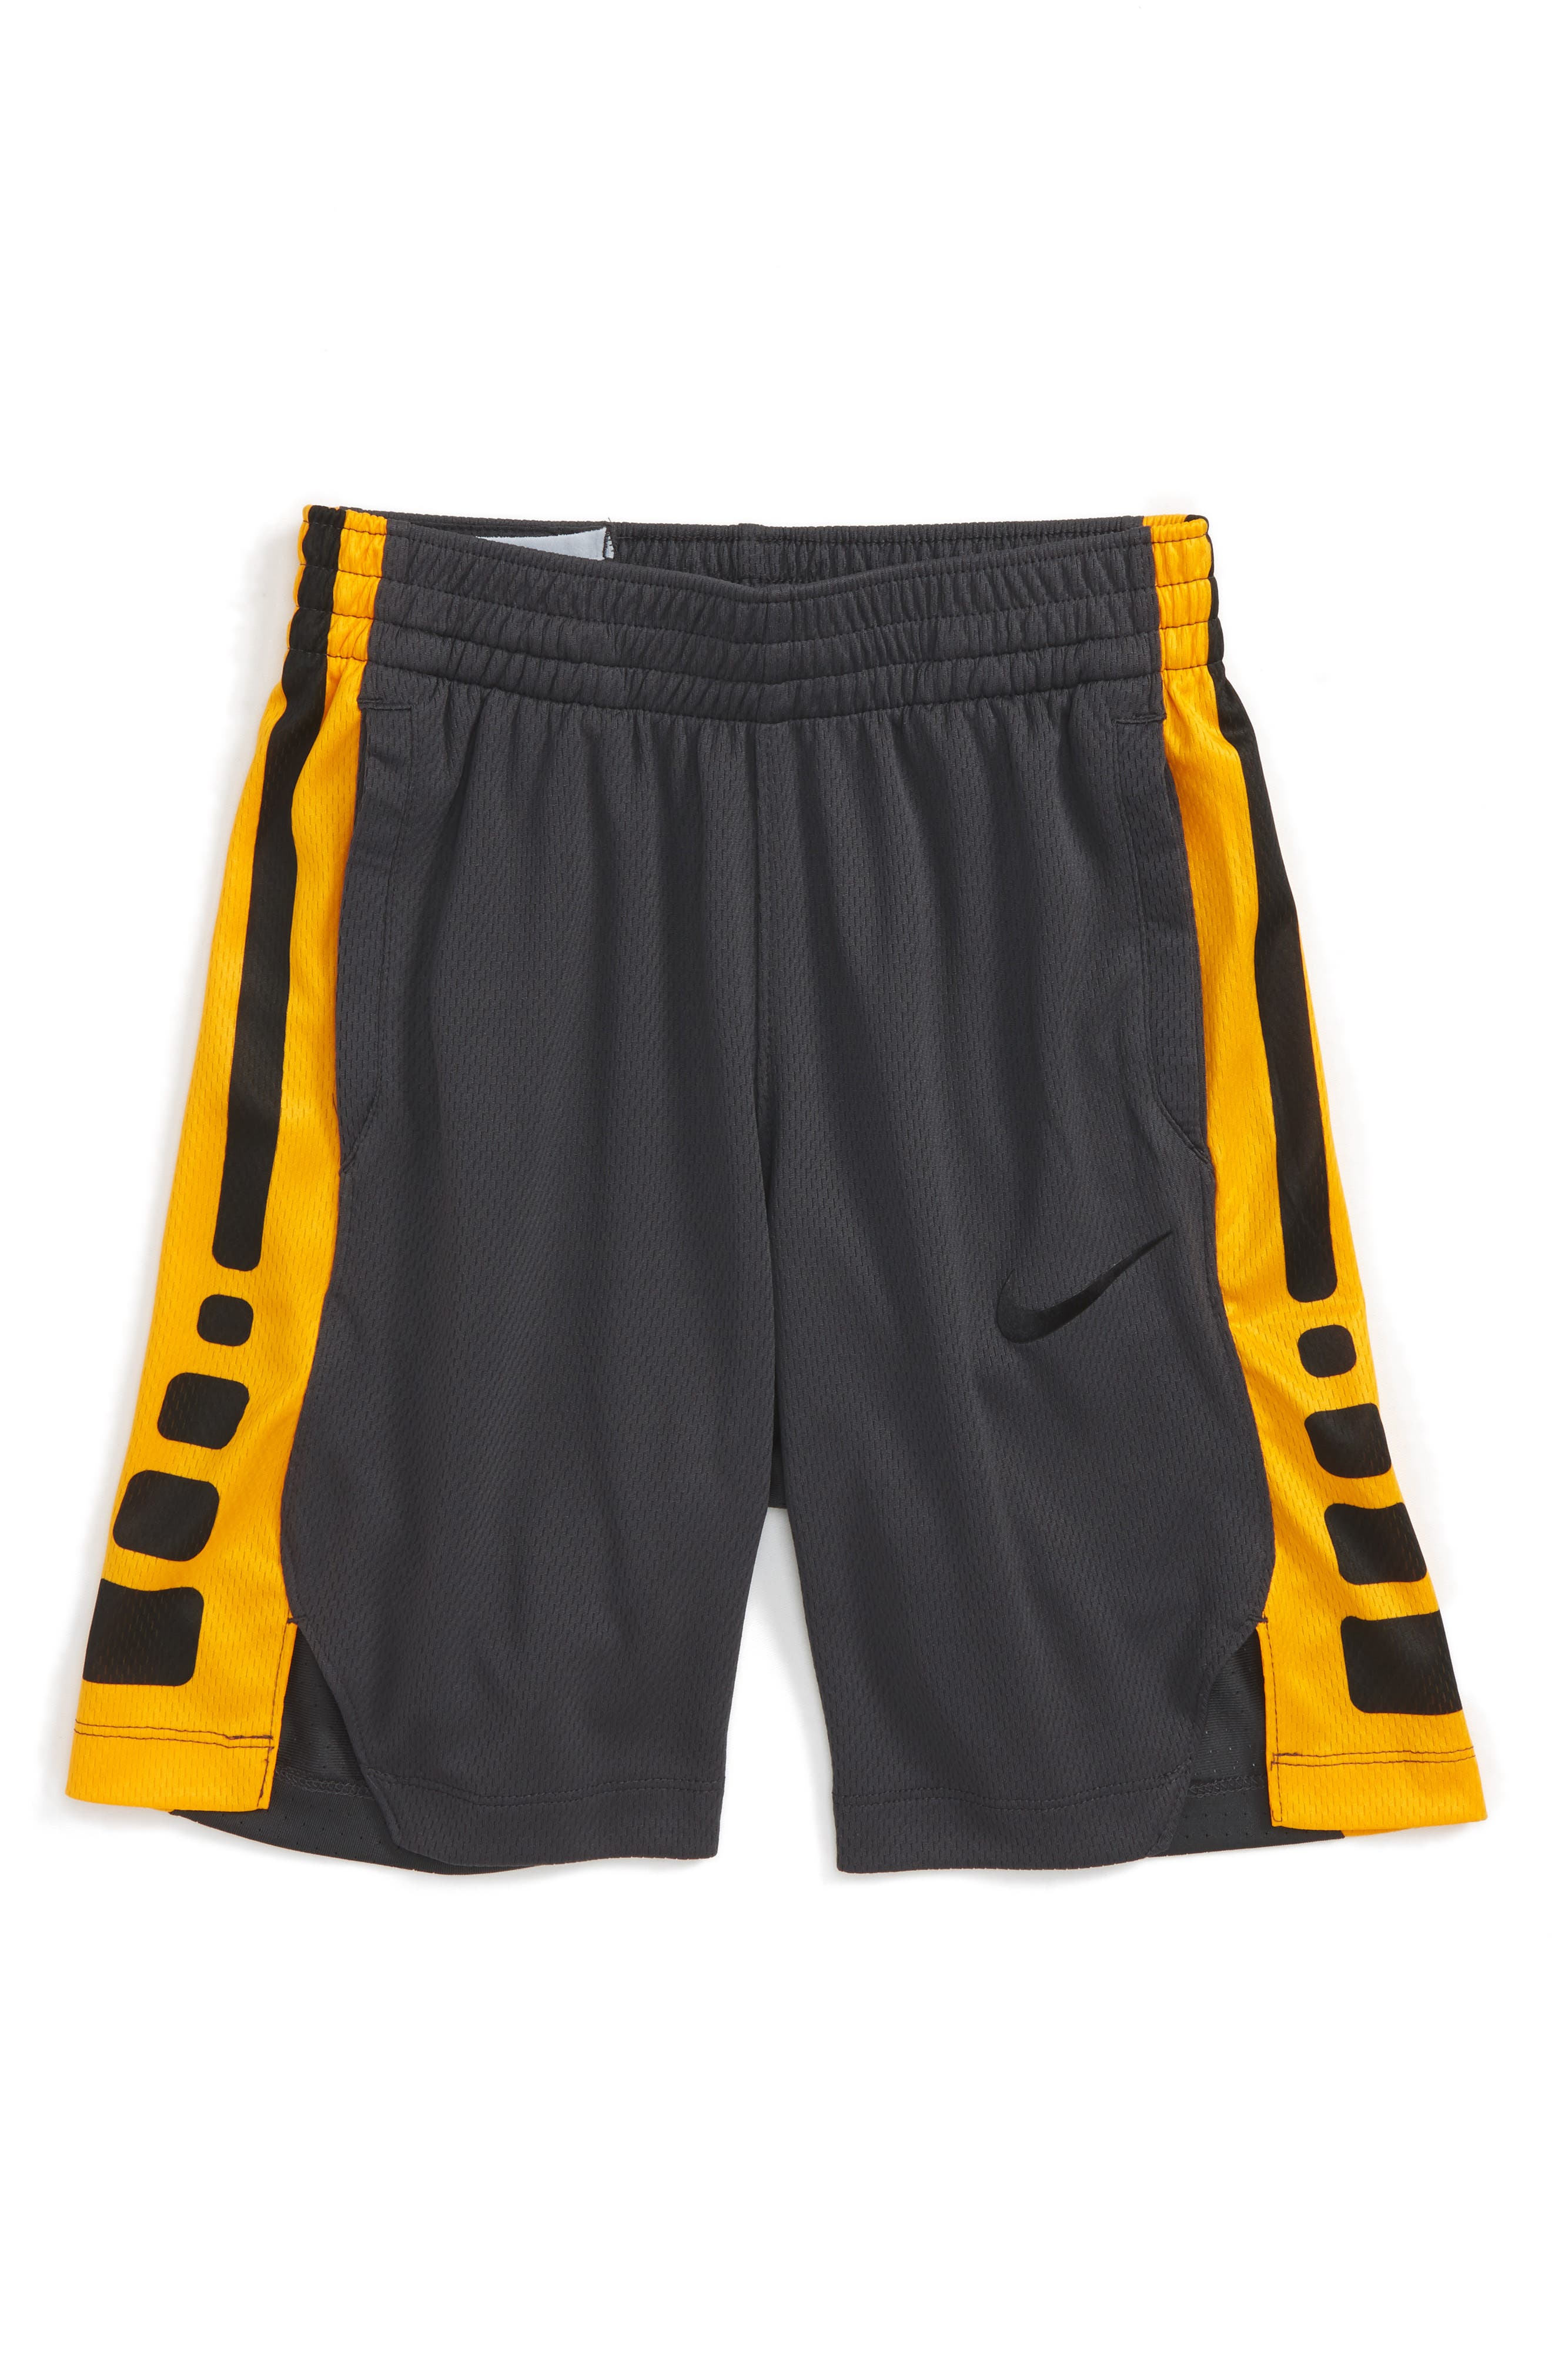 Dry Elite Basketball Shorts,                             Main thumbnail 29, color,